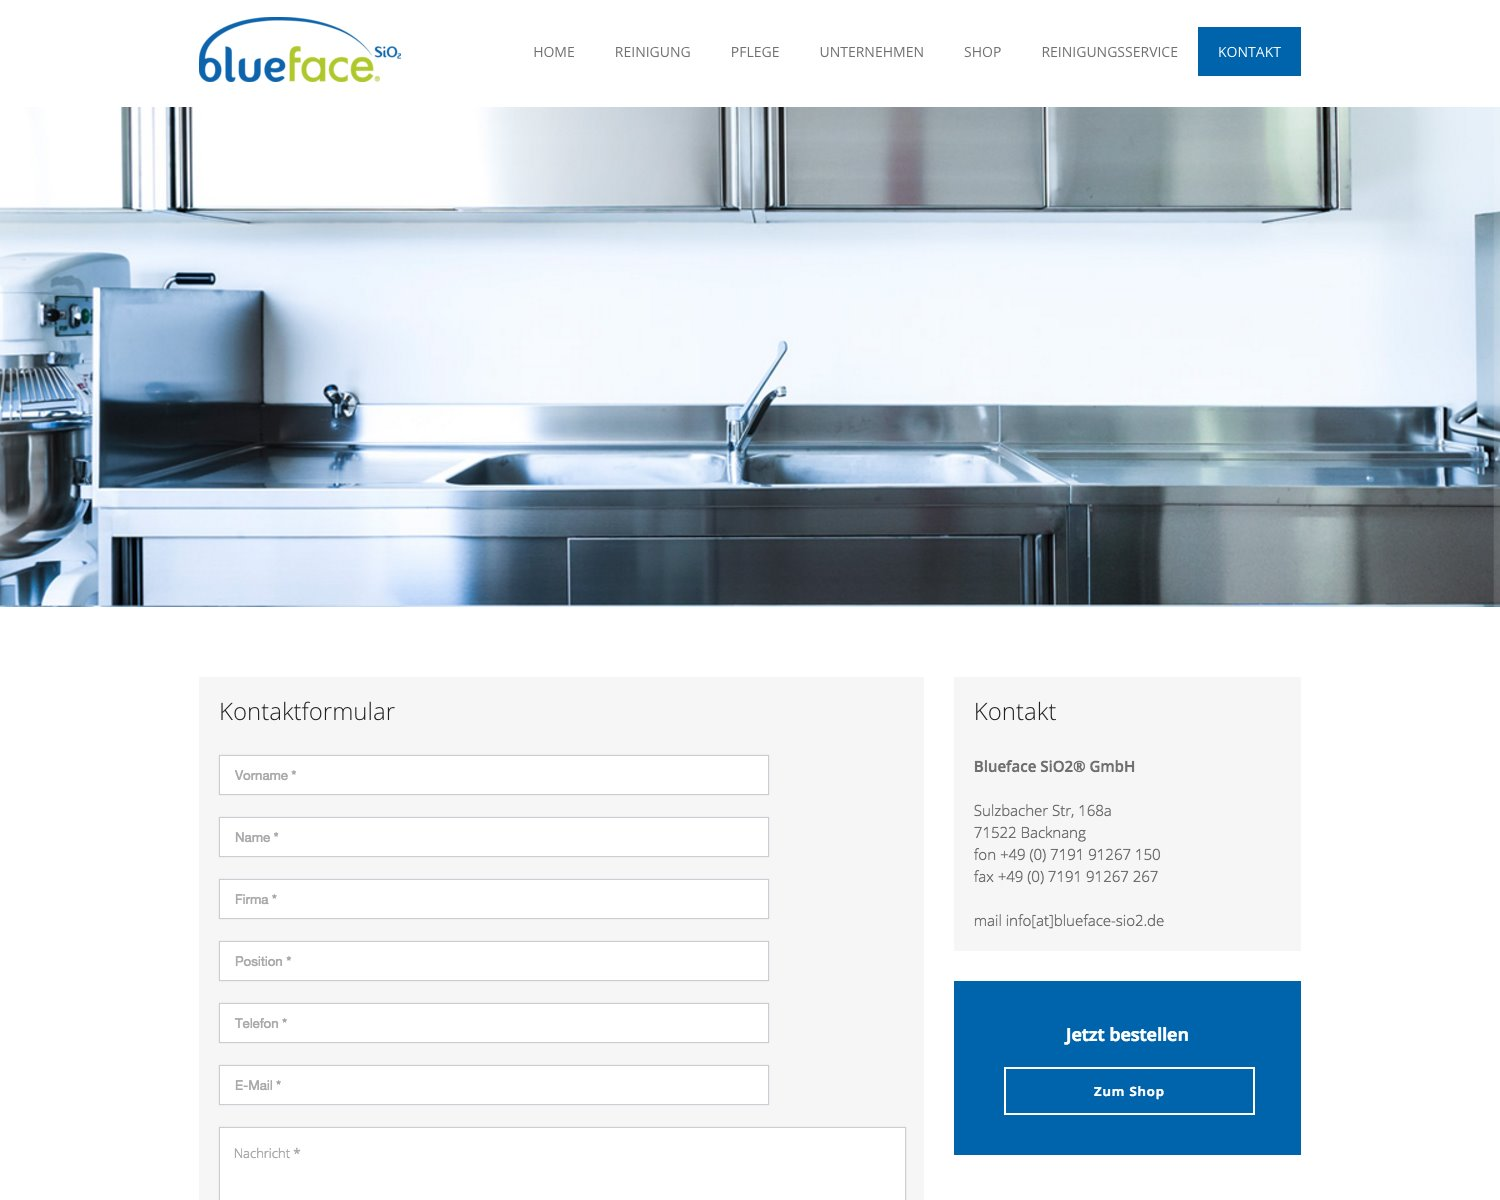 Case Study – Blueface SiO2